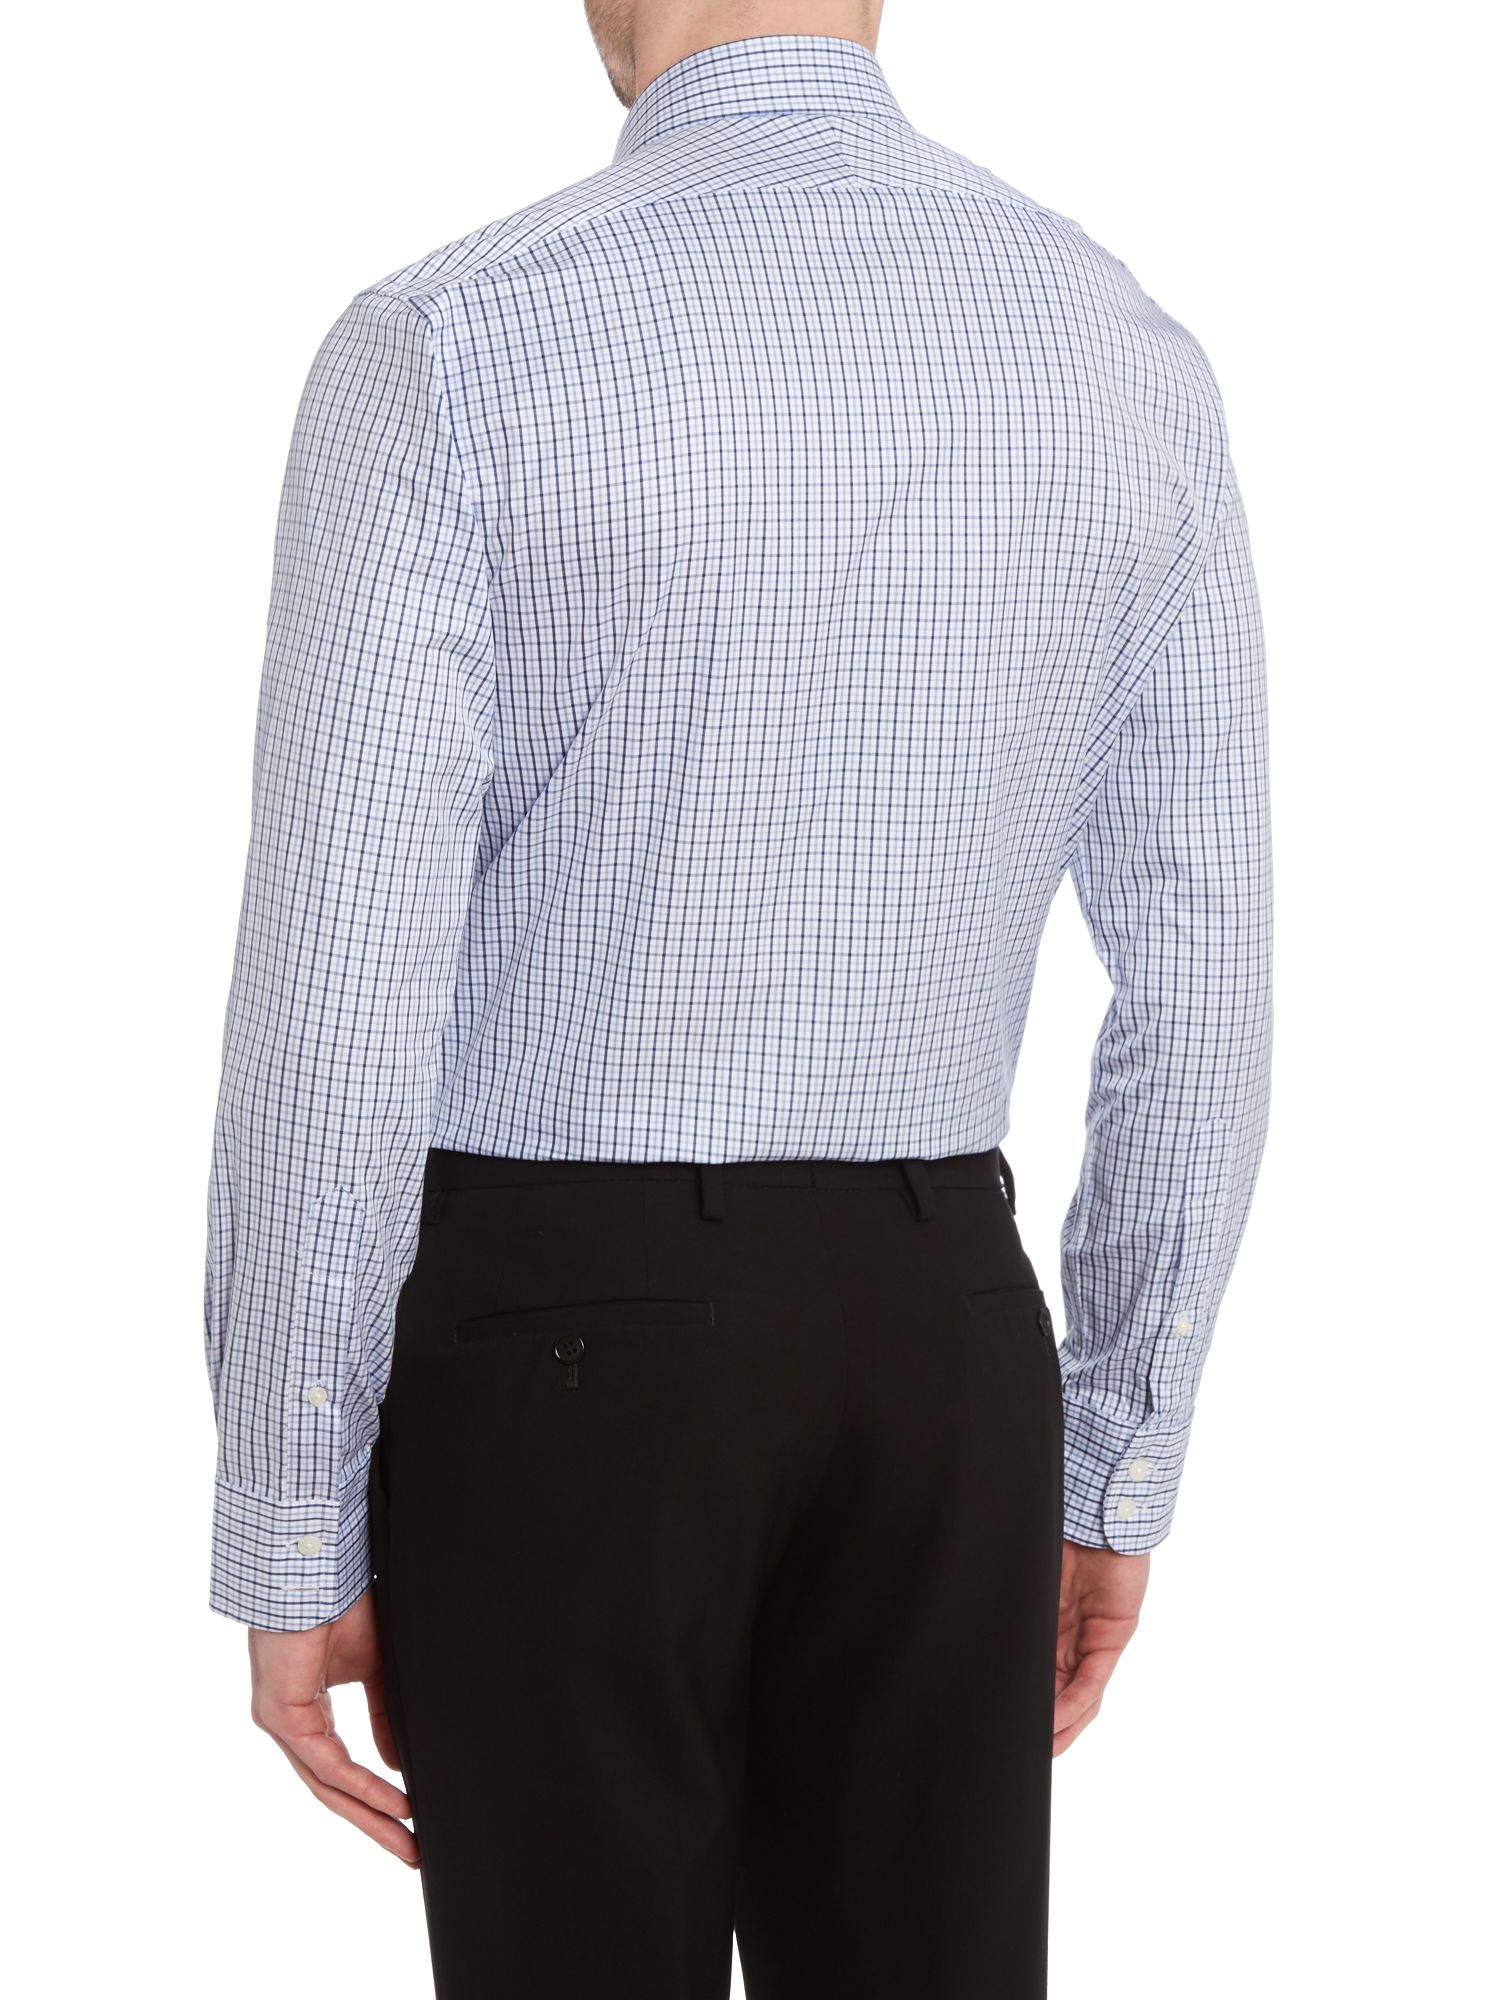 Tm Lewin Check Slim Fit Long Sleeve Shirt In Blue For Men